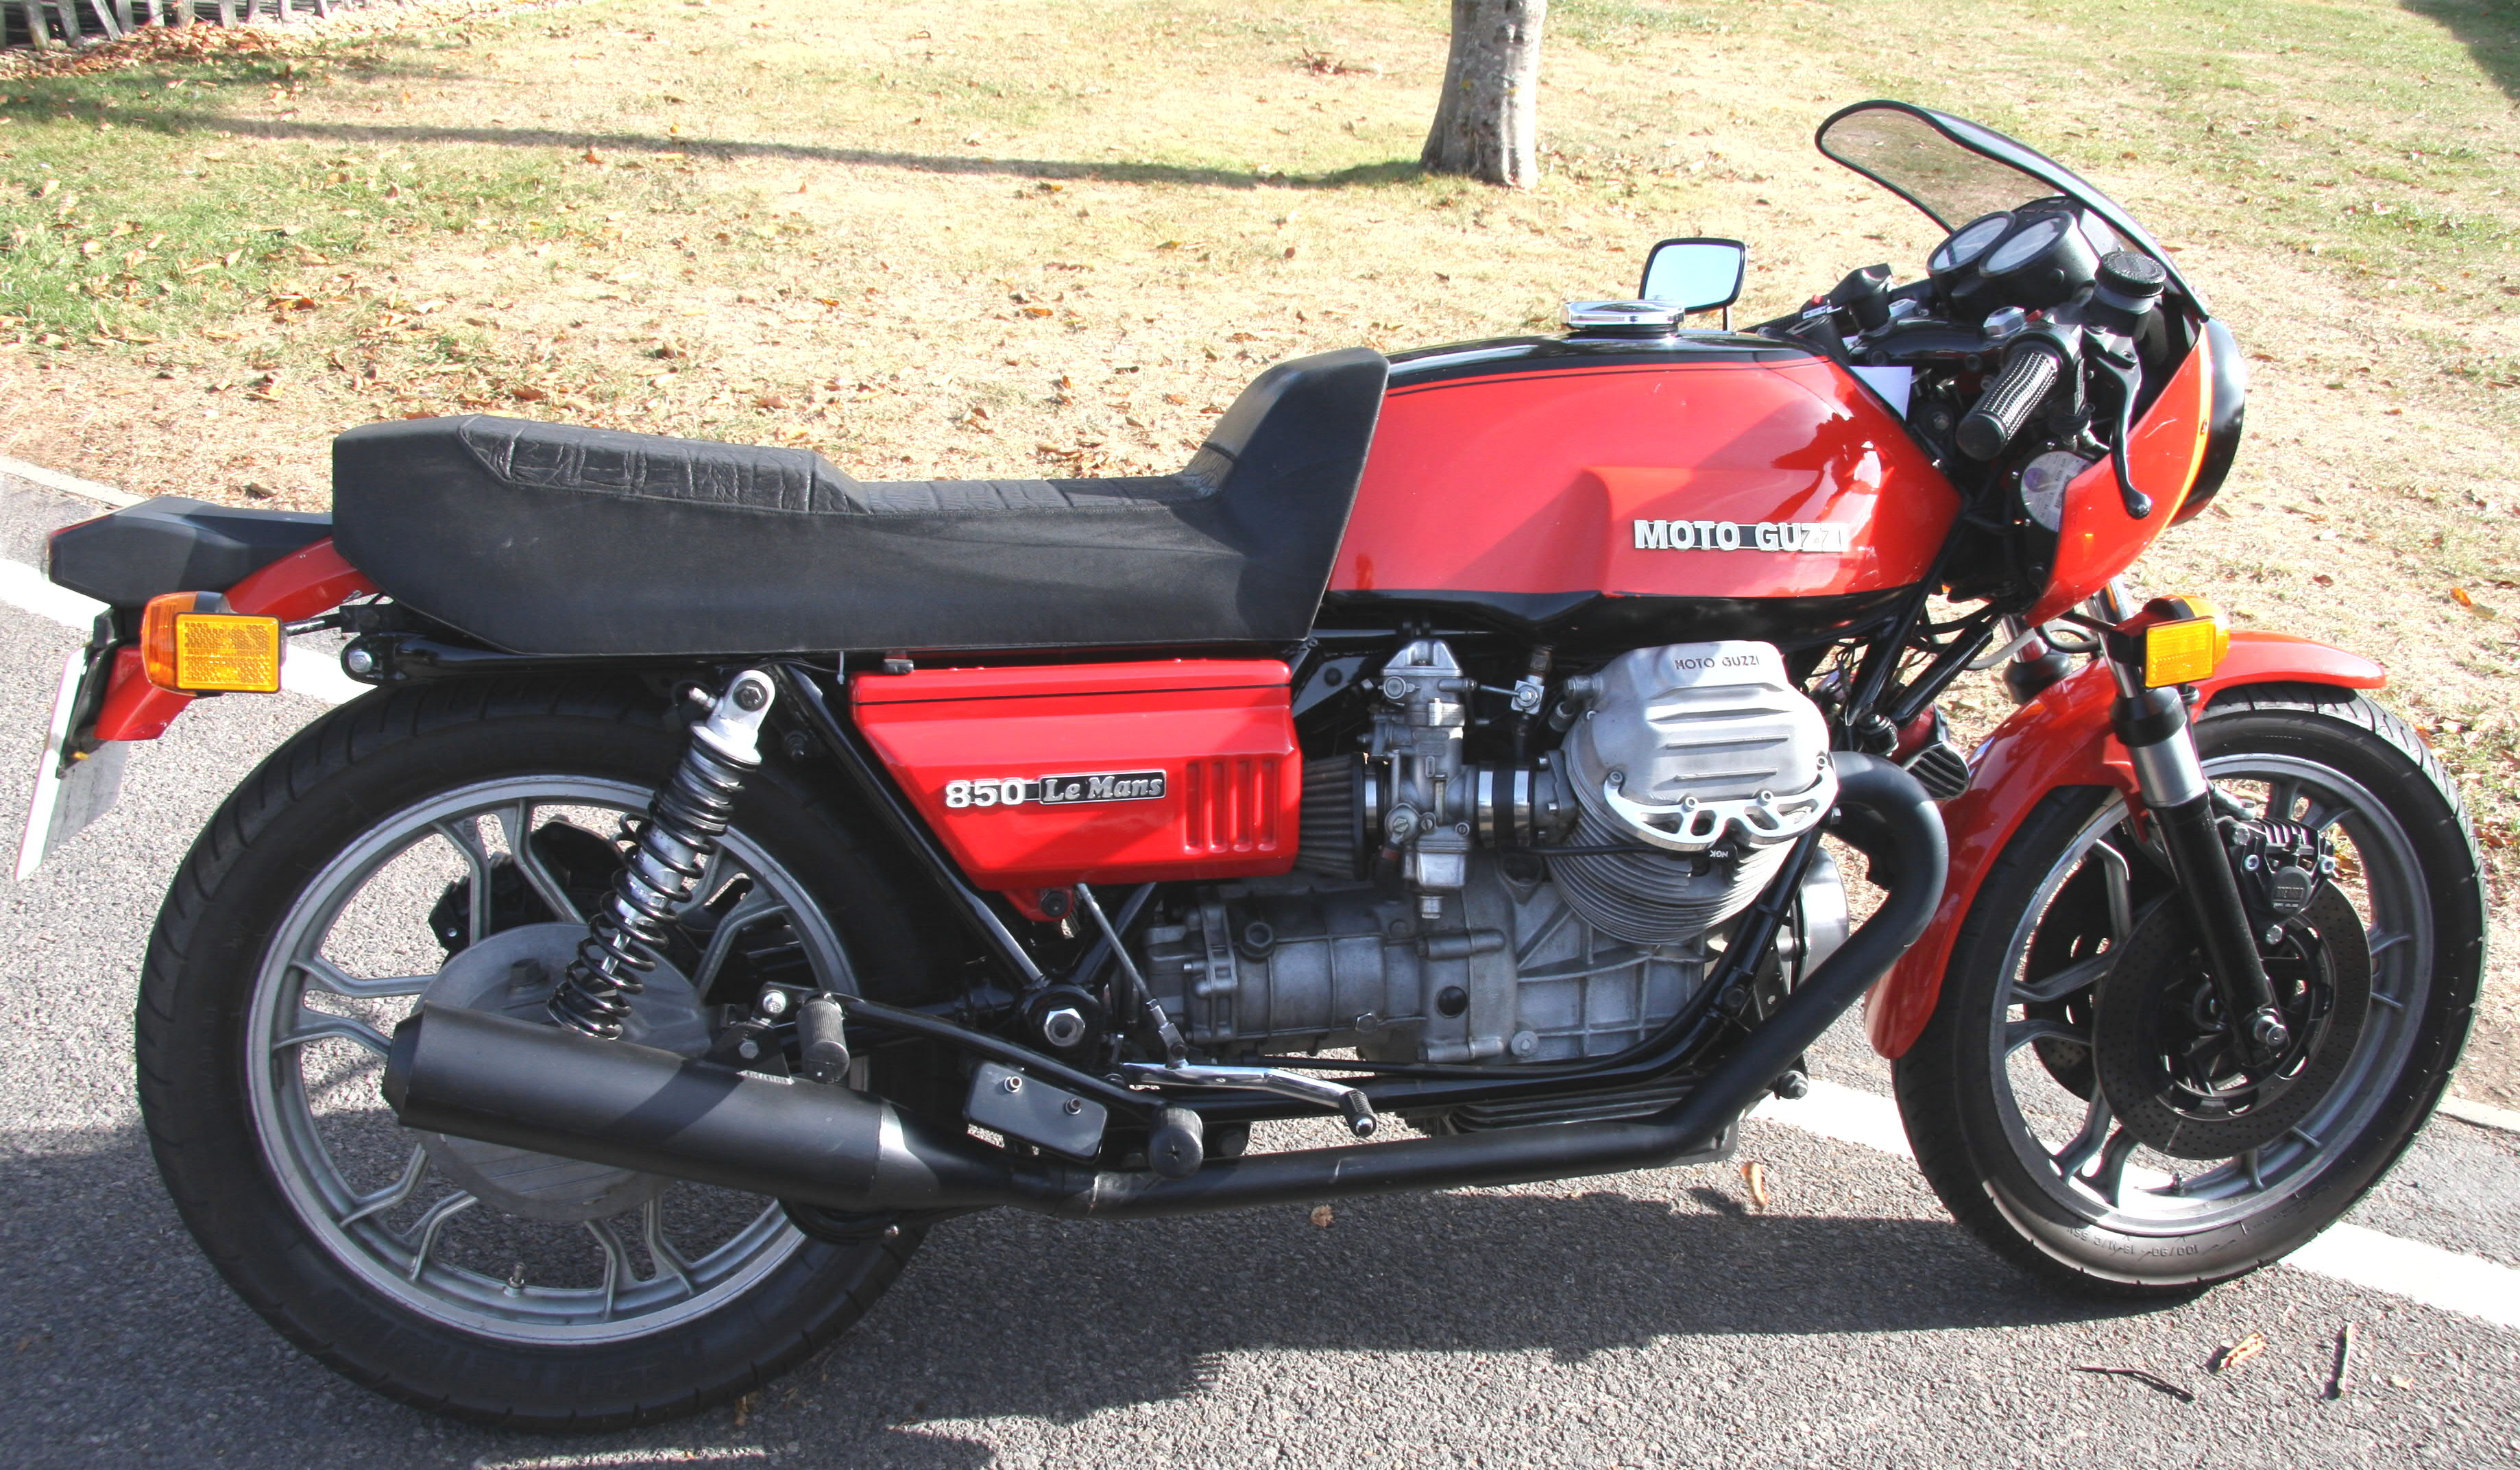 Moto Guzzi 850 California 1975 images #107135